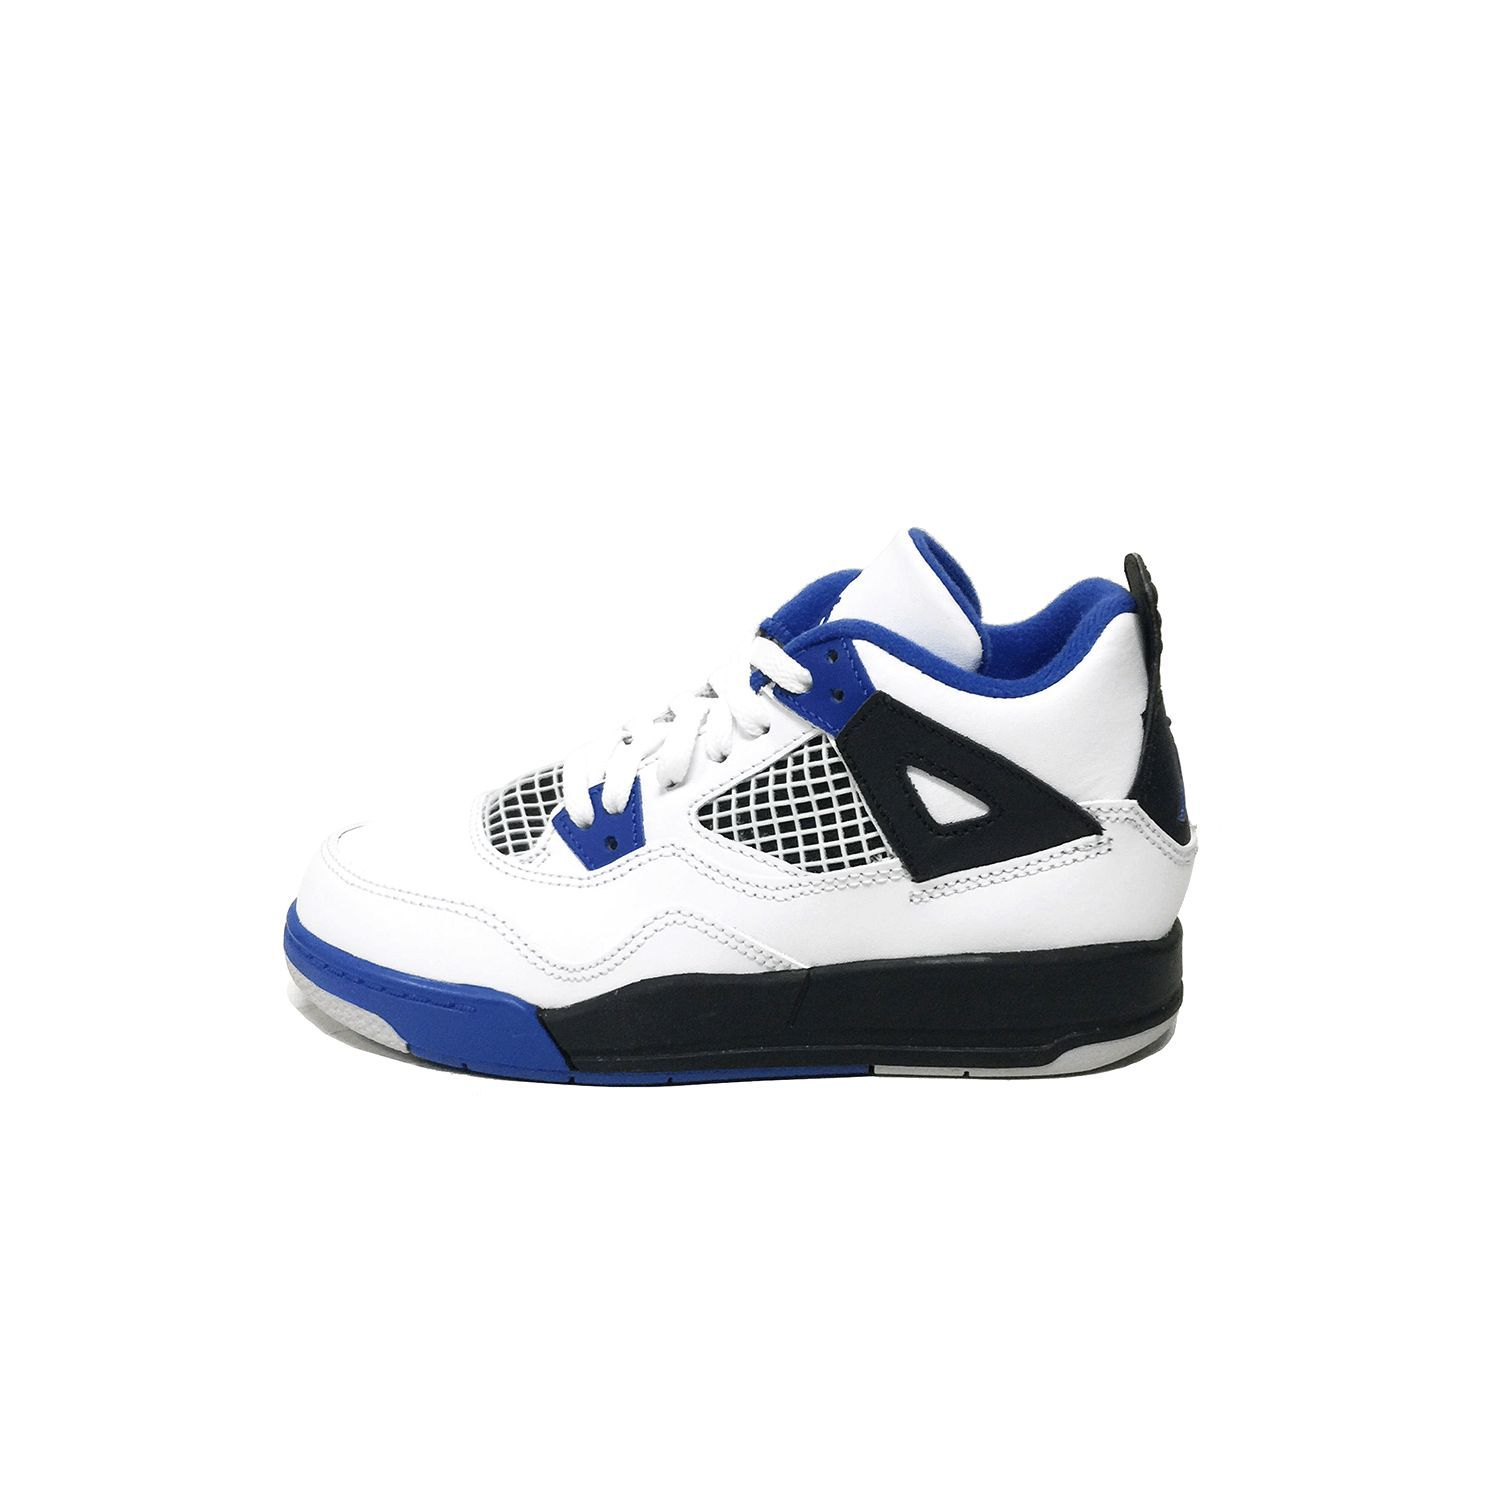 Air Jordan Retro 4 'Motorsport' Big Kids(BP)